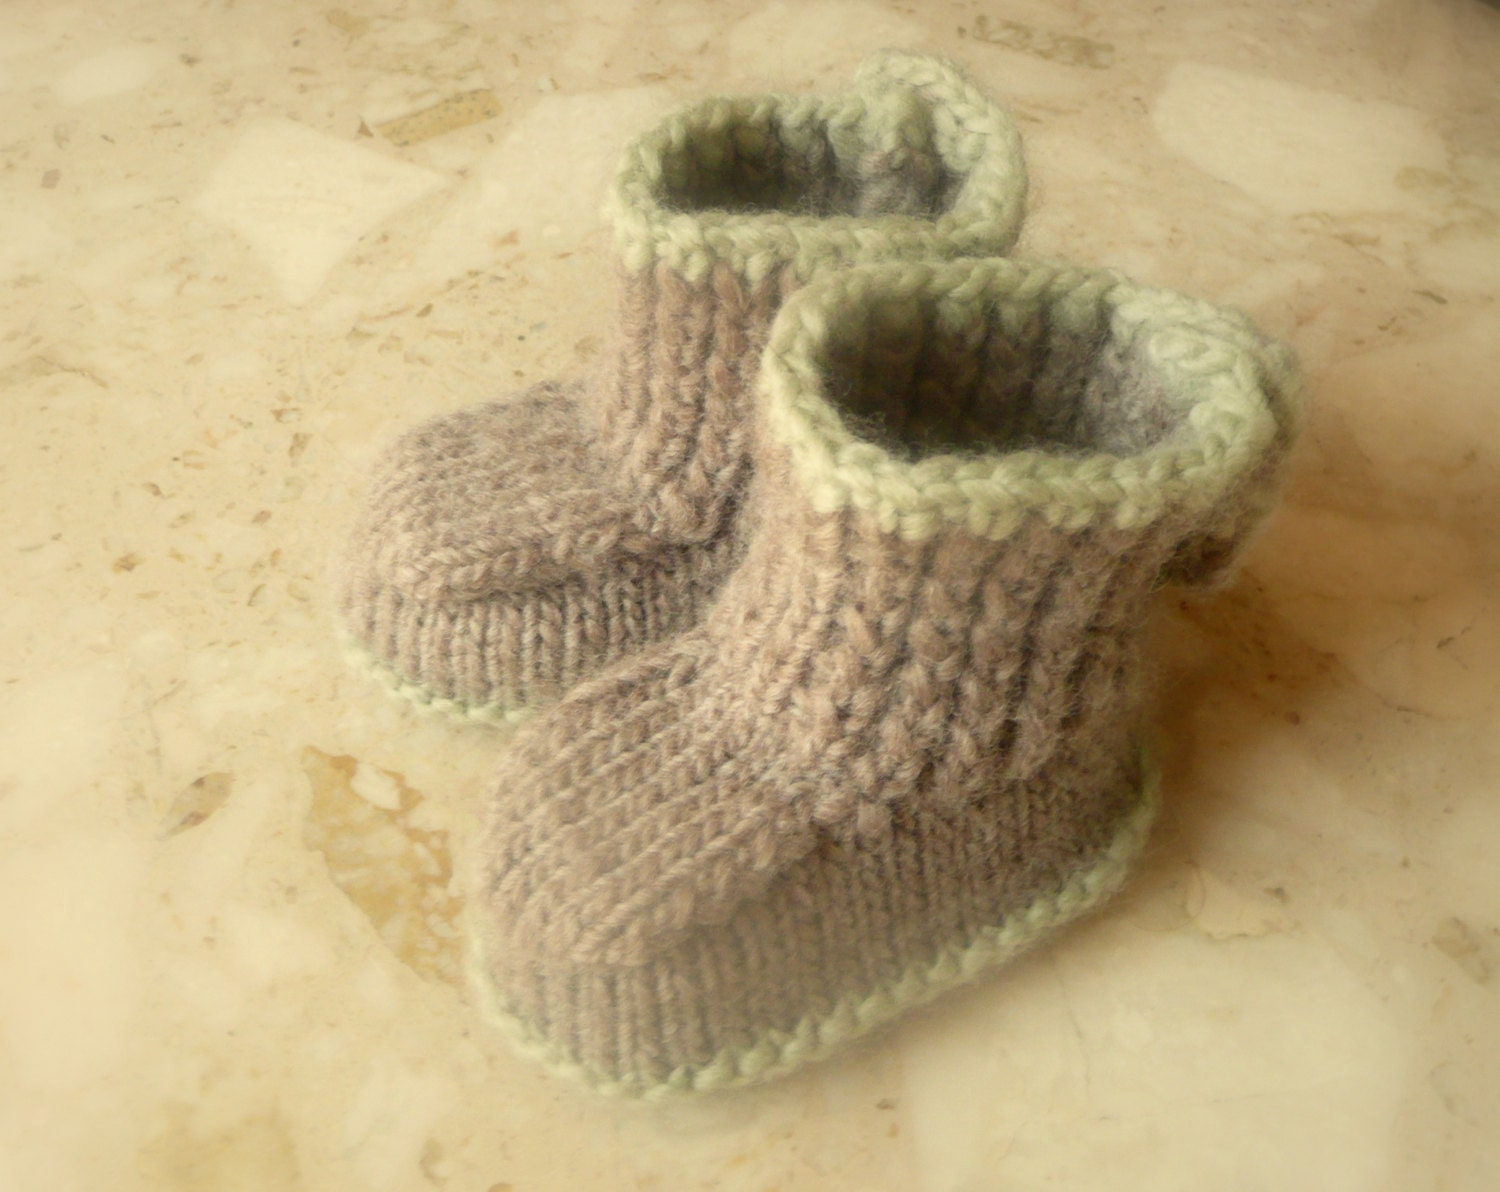 Knitting Patterns For Seamless Baby Booties : Instant DOWNLOAD Knitting PATTERN BABY Booties Seamless by ceradka